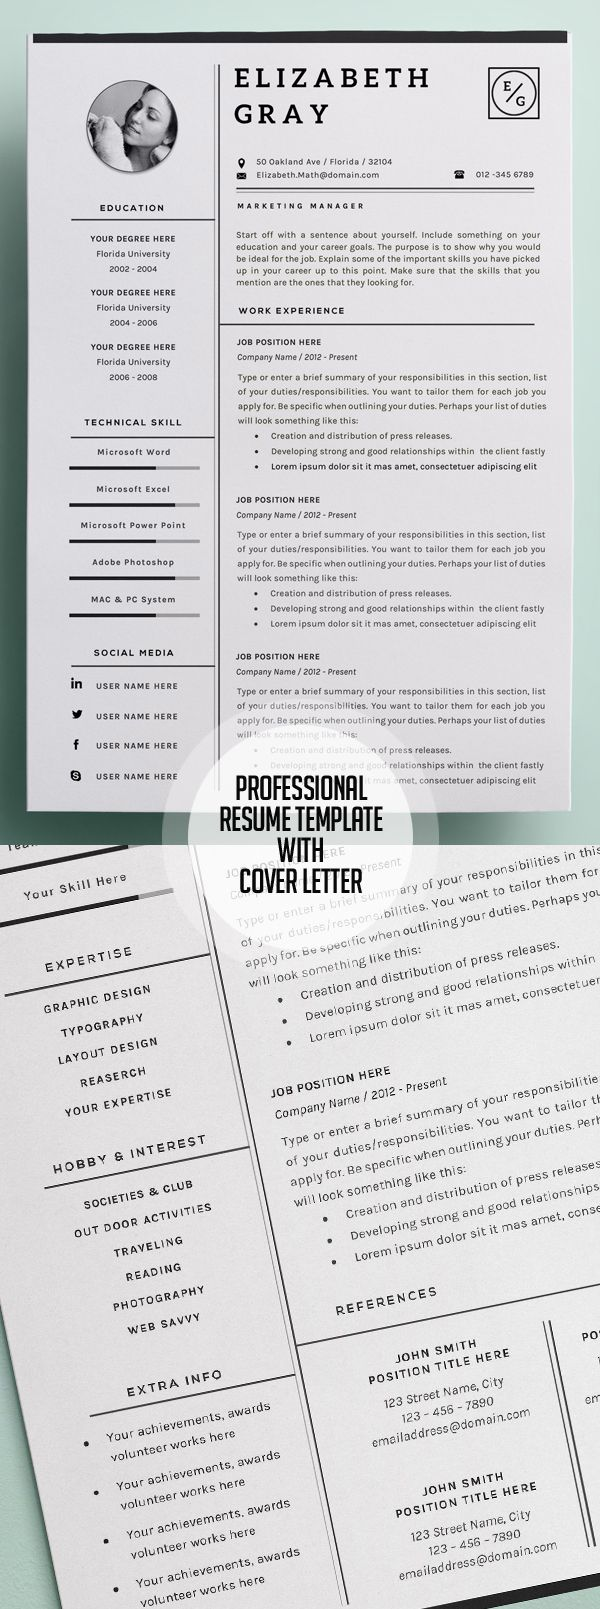 Picnictoimpeachus  Scenic  Resume Ideas On Pinterest  Resume Resume Templates And  With Foxy Professional And Modern Resume Template With Page Cover Cvtemplate With Amusing Picture In Resume Also Planner Resume In Addition Objective Summary For Resume And Resume Printing Paper As Well As What To Include On Your Resume Additionally Life Insurance Agent Resume From Pinterestcom With Picnictoimpeachus  Foxy  Resume Ideas On Pinterest  Resume Resume Templates And  With Amusing Professional And Modern Resume Template With Page Cover Cvtemplate And Scenic Picture In Resume Also Planner Resume In Addition Objective Summary For Resume From Pinterestcom